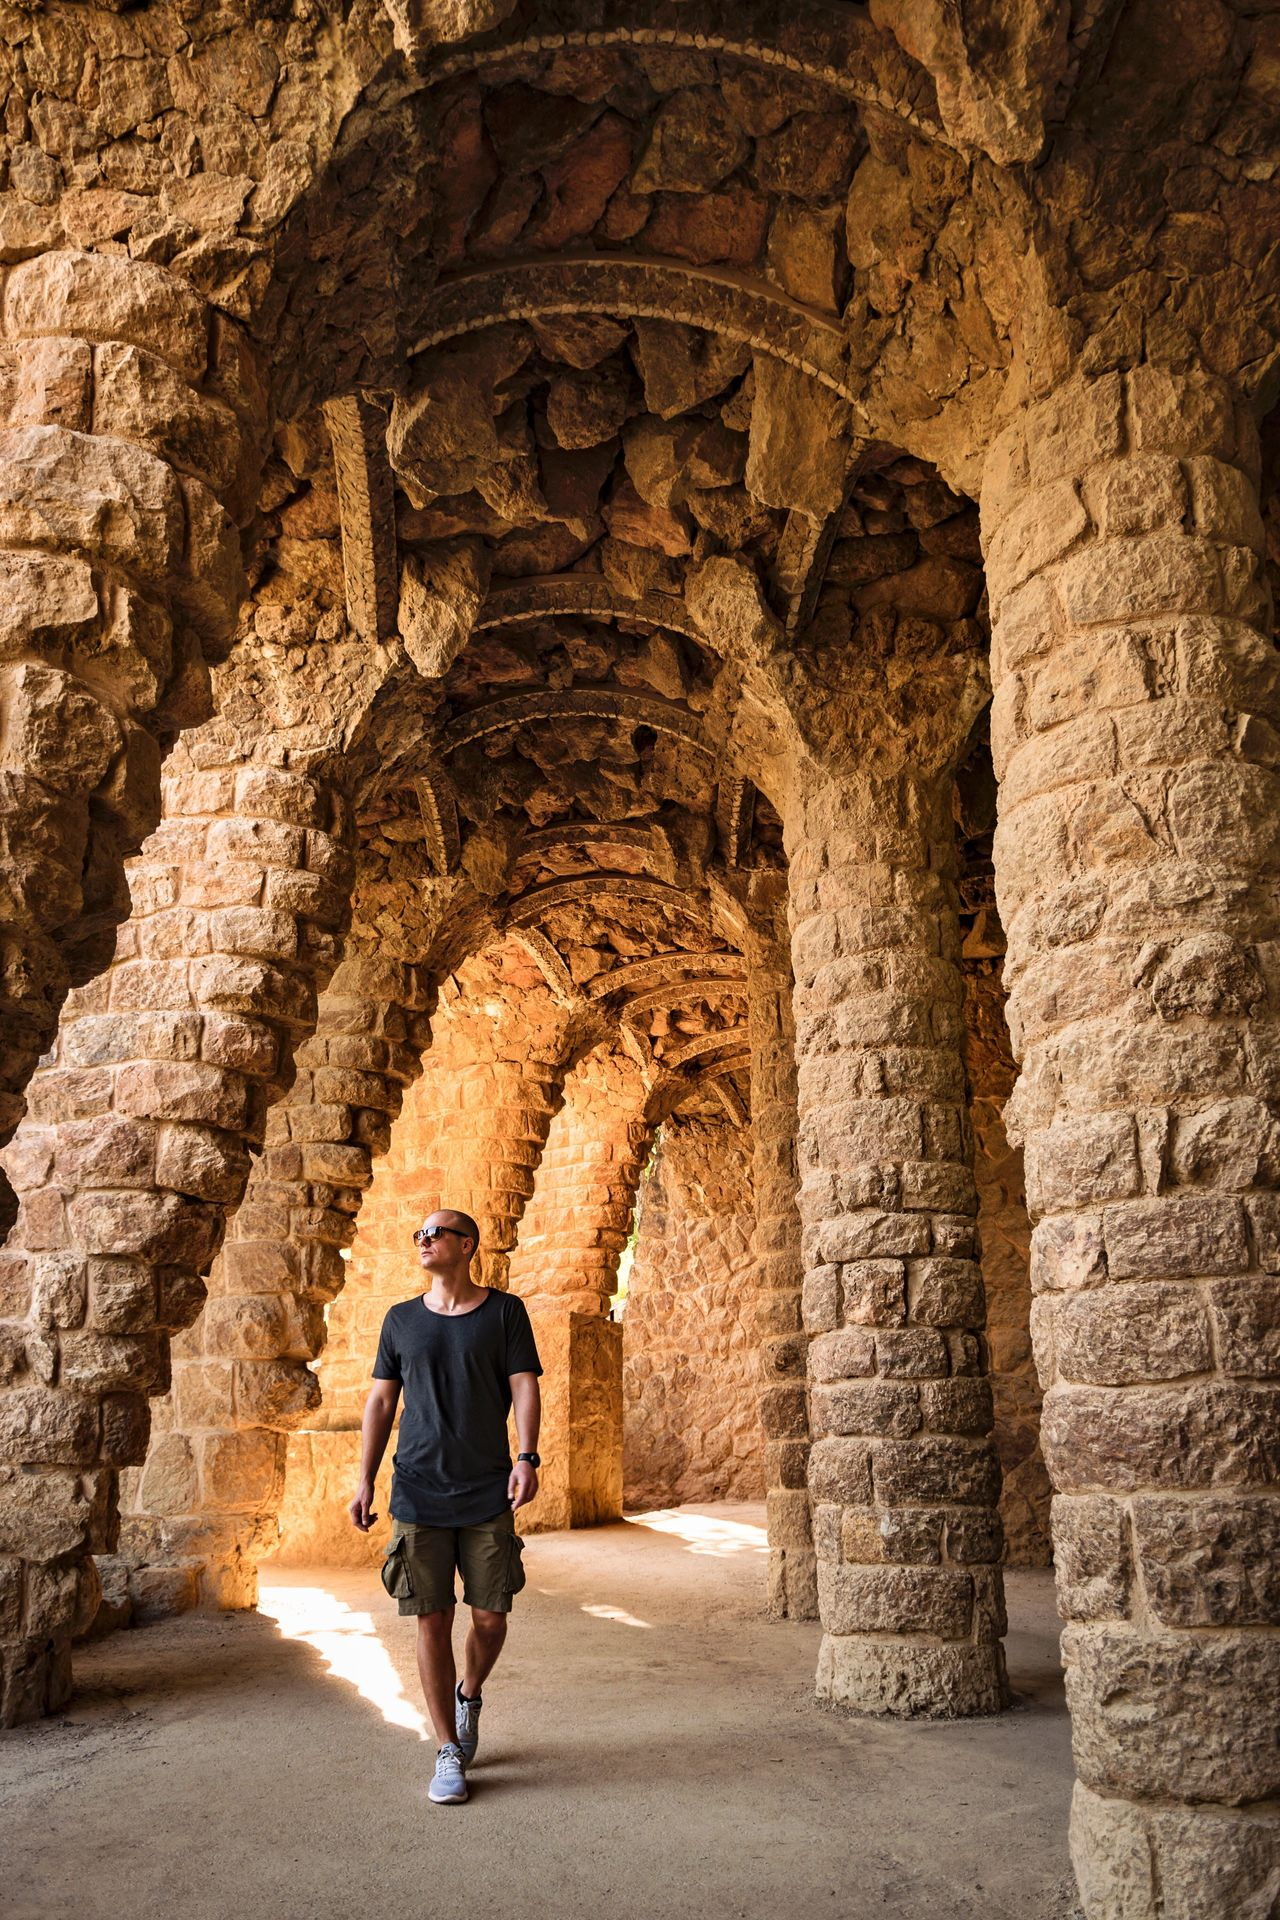 Full Length Arch Adult One Person Walking Adults Only One Man Only History Only Men People Day Indoors  Park Barcelona SPAIN EyeEm Best Shots EyeEm Nature Lover EyeEm Gallery EyeEmNewHere Portrait Travel Live For The Story Man Walking Around The Street Photographer - 2017 EyeEm Awards